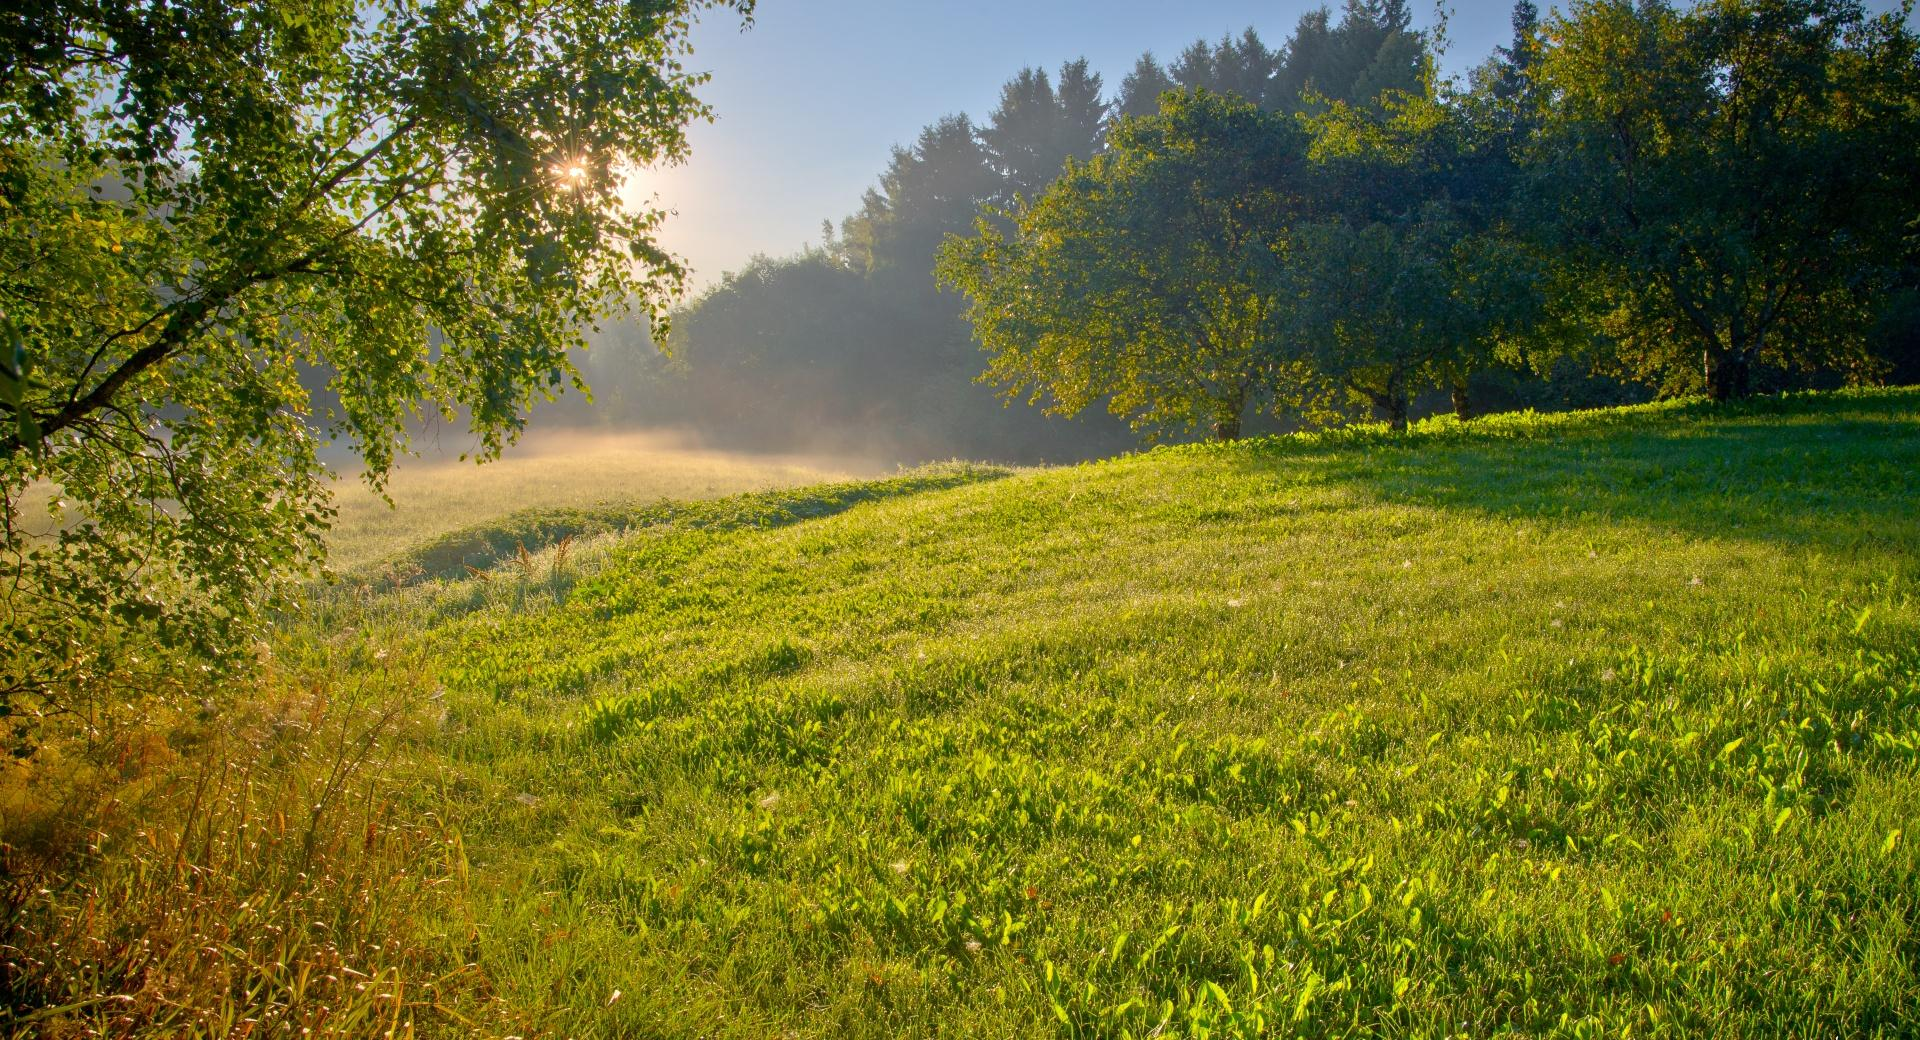 Summer Morning wallpapers HD quality